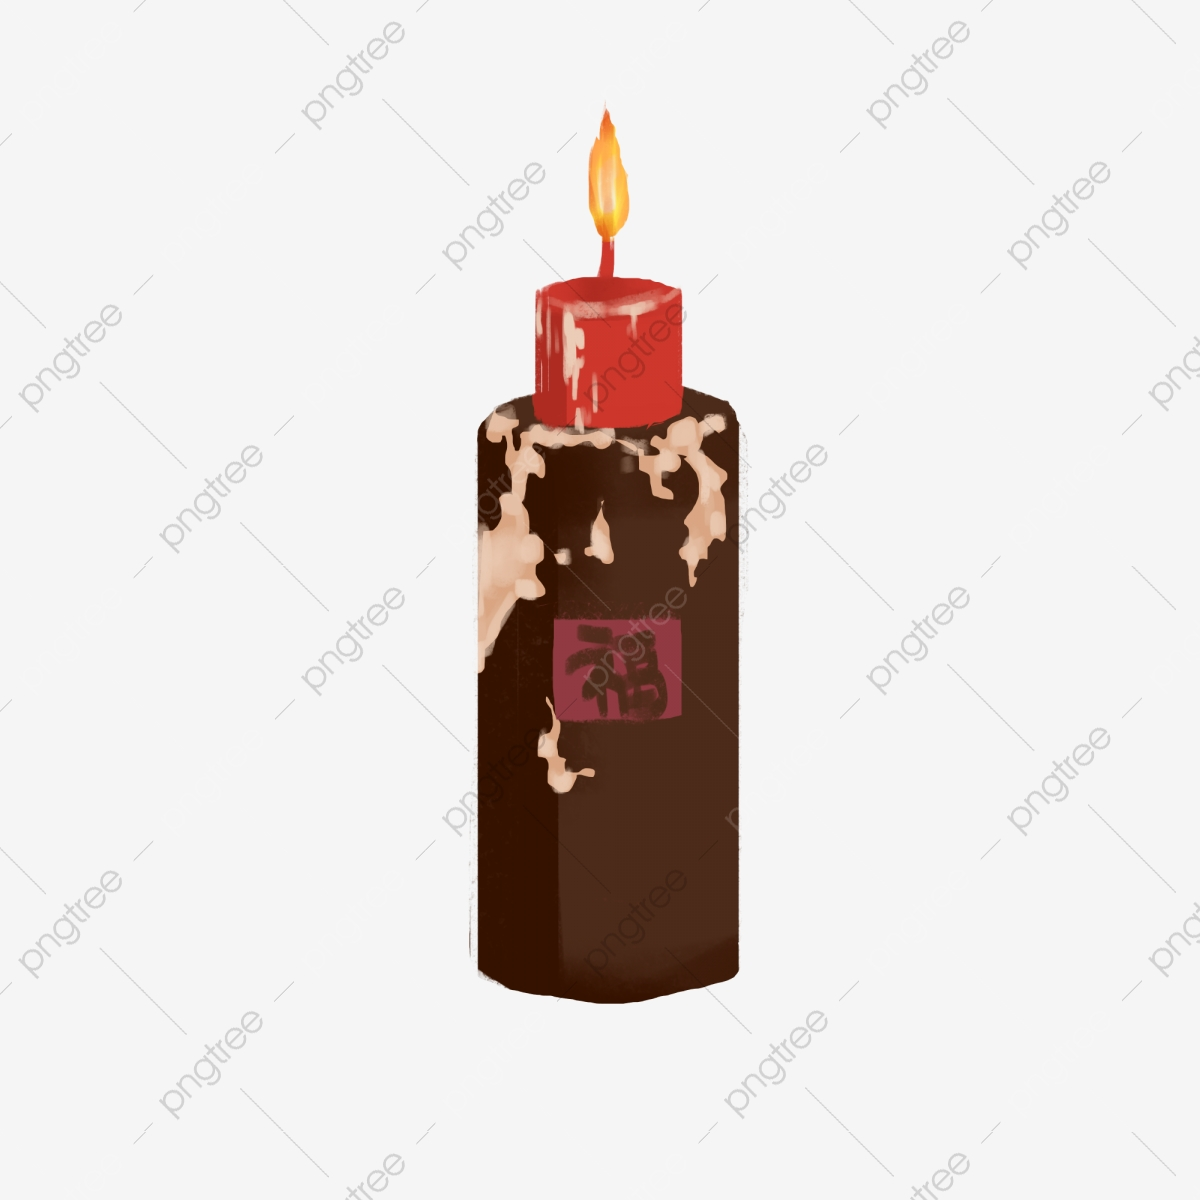 Candle Candles Spa Spas Flowers Flower Refreshment Refreshments Beauty  Beautiful Free Vector Graphics, Clip Art, Icons, Photos and Images |  StockUnlimited